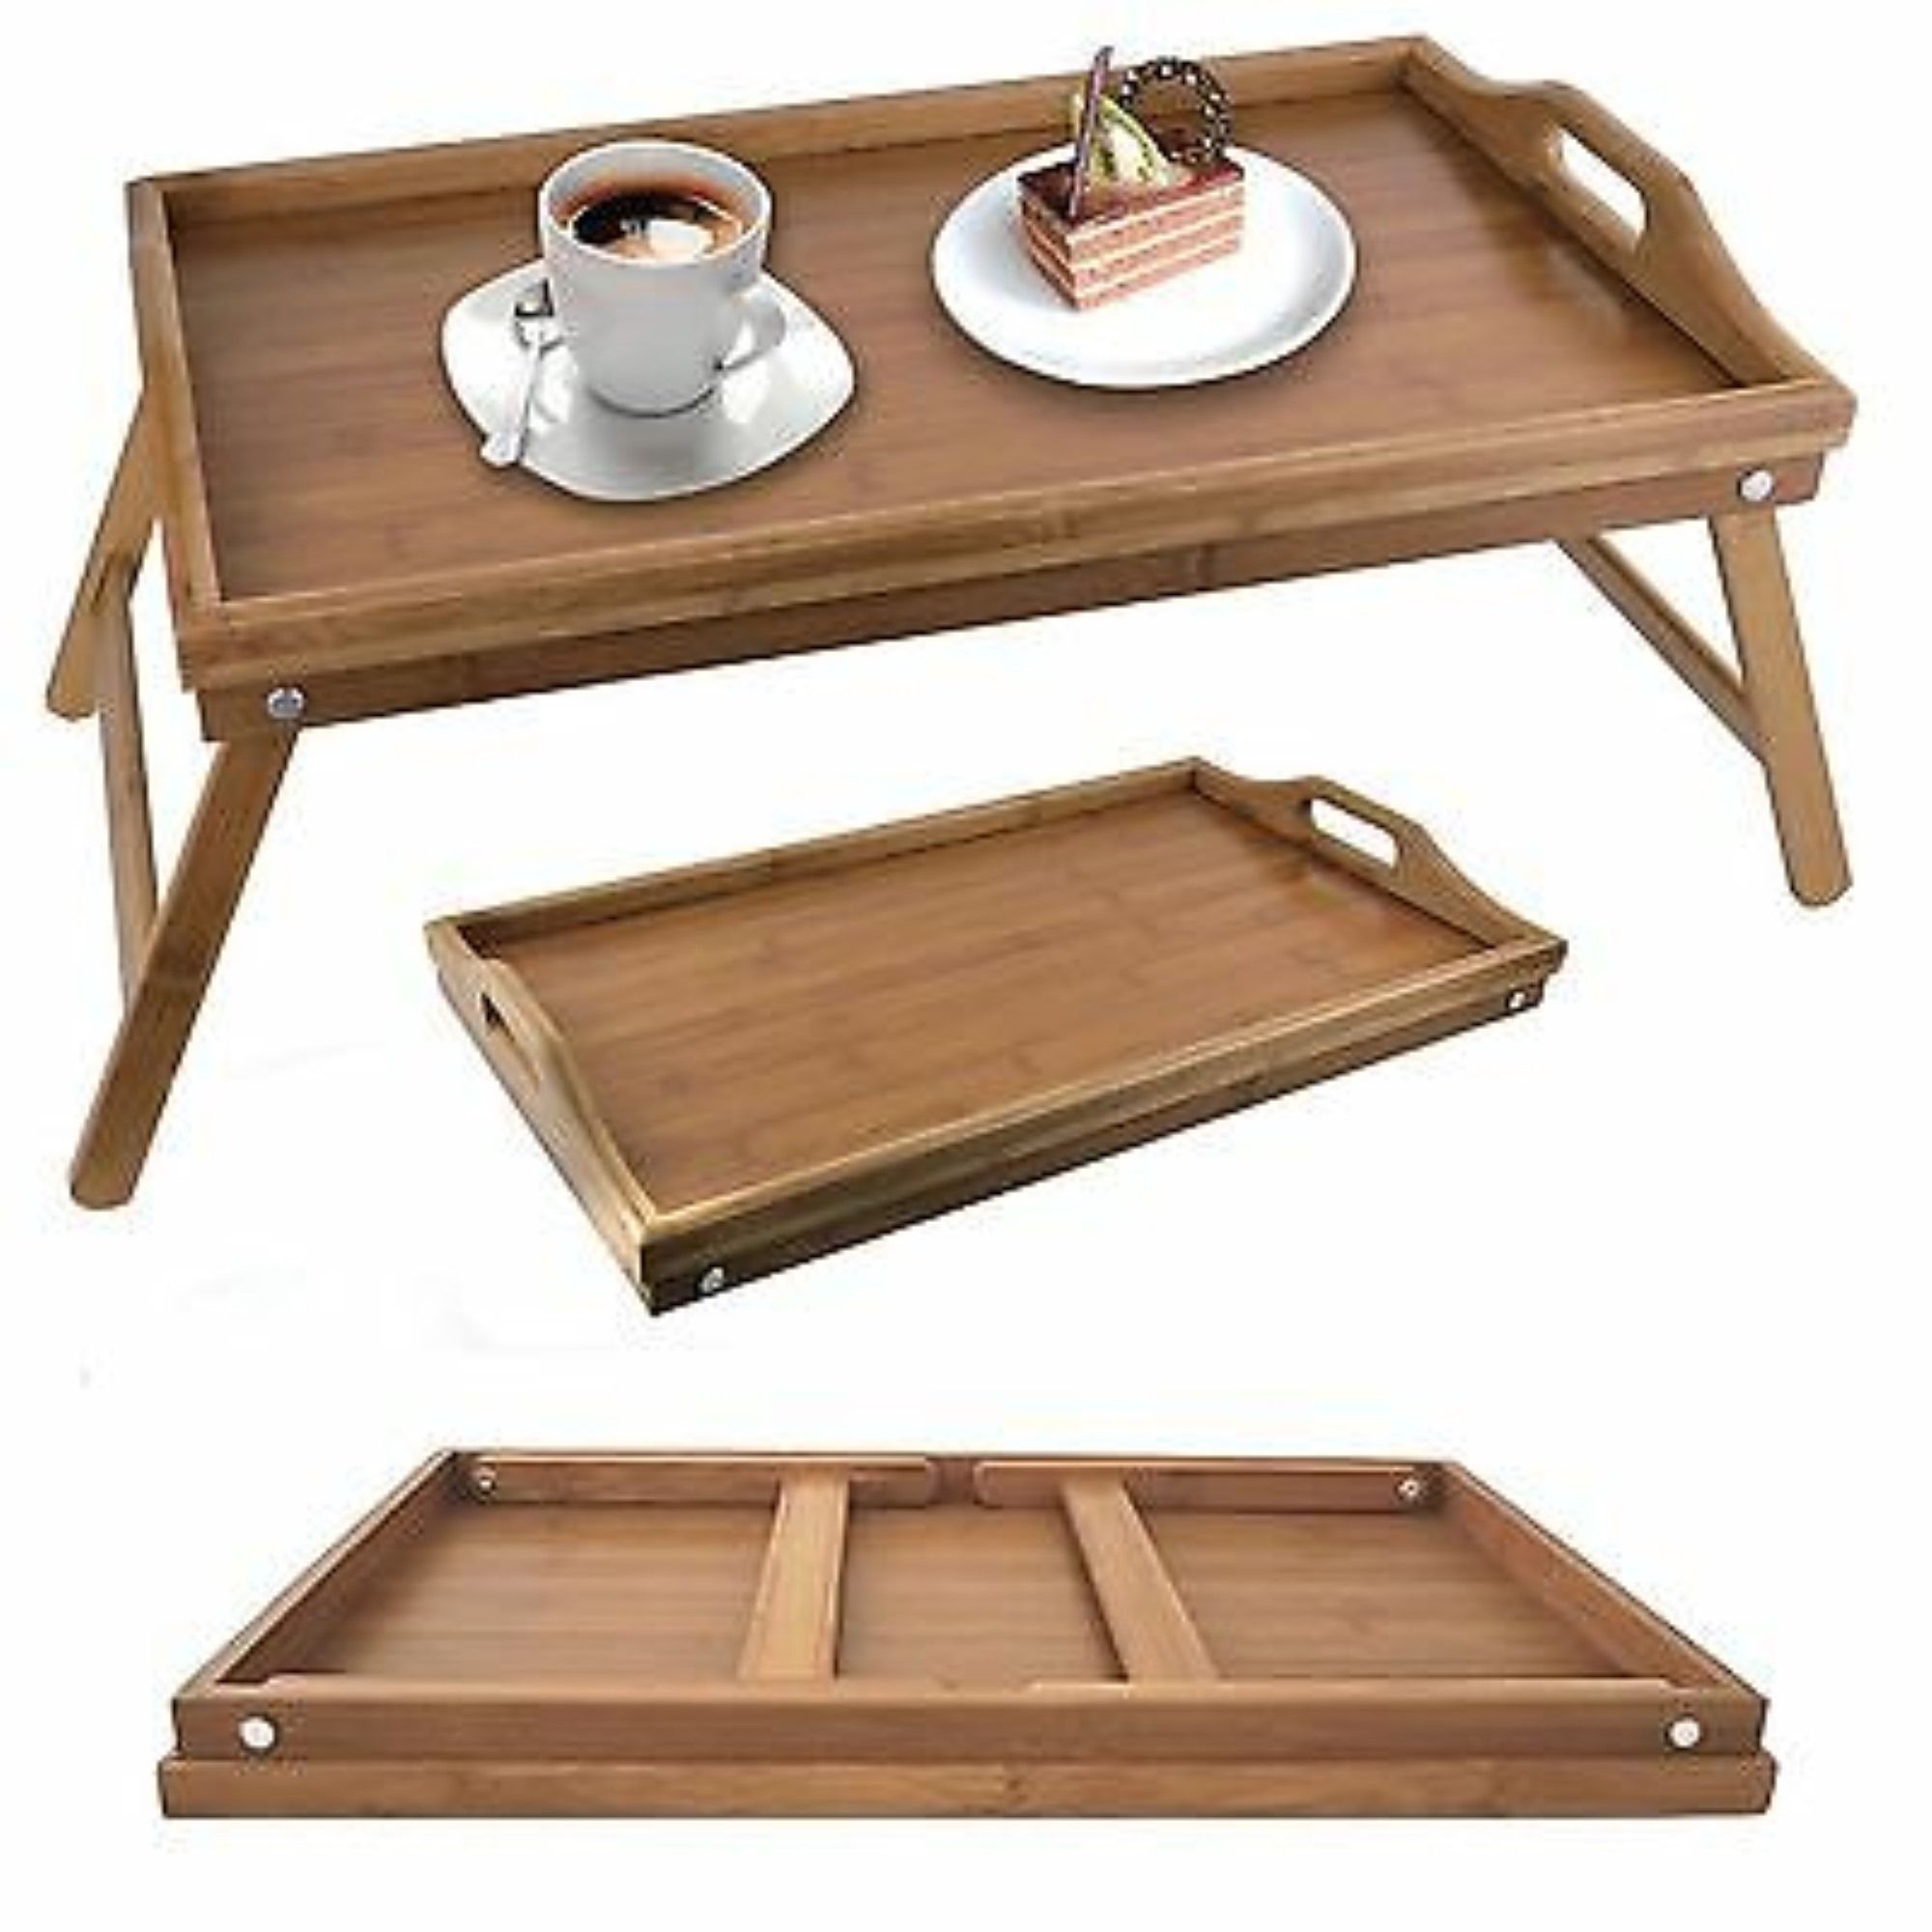 Breakfast In Bed Ideas For Home Free Shipping Cash On Delivery